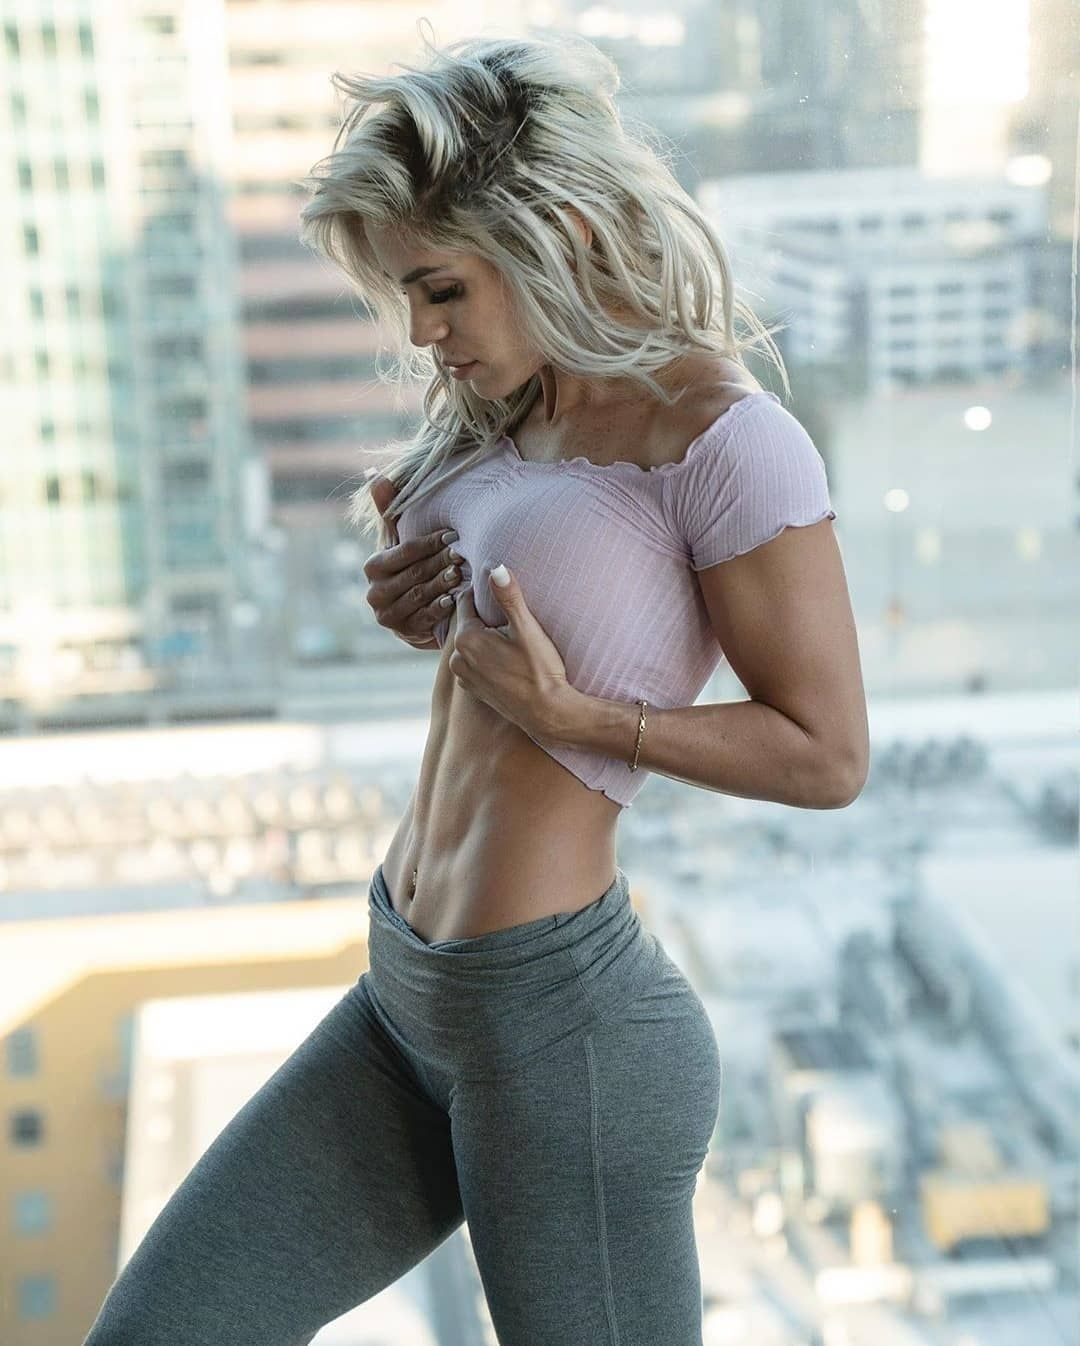 Michelle Lewin ❤ #LaCuerpa #Fit #Fitness #FitnessGirl #FitnessBody#fit#fit -  Michelle Lewin ❤ #LaCu...